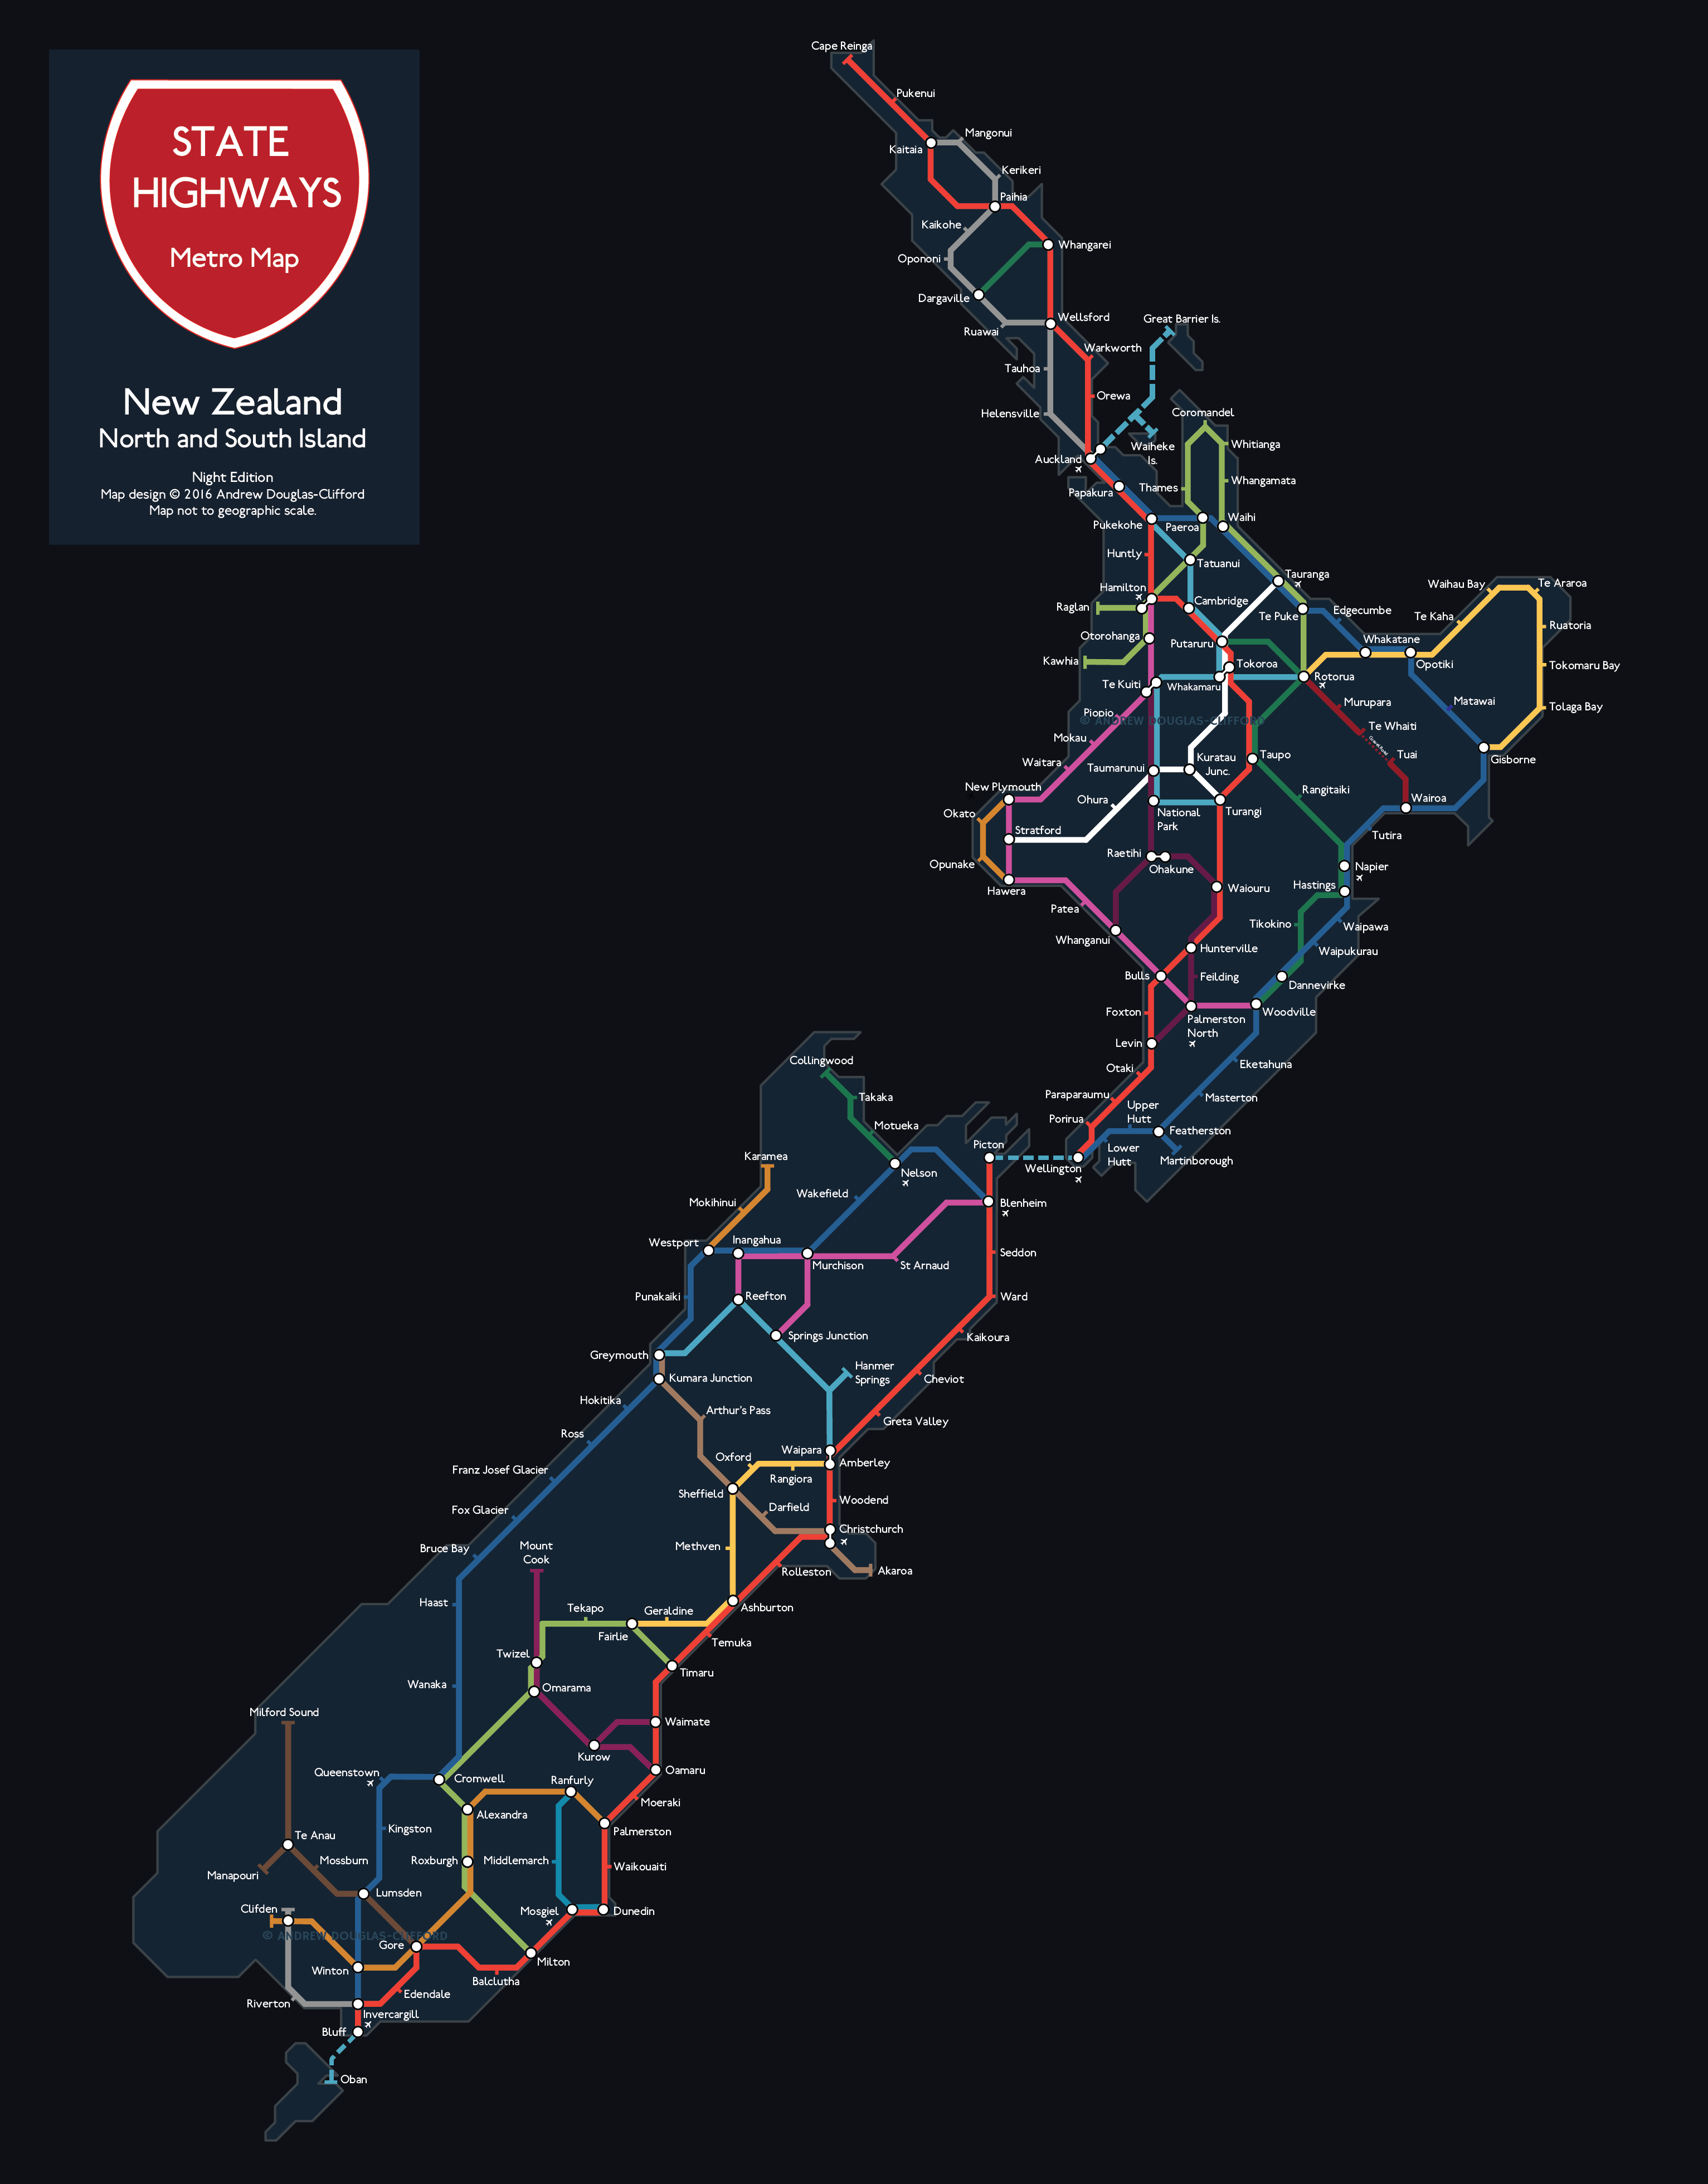 New Zealand State Highways Night Print The Map Kiwi